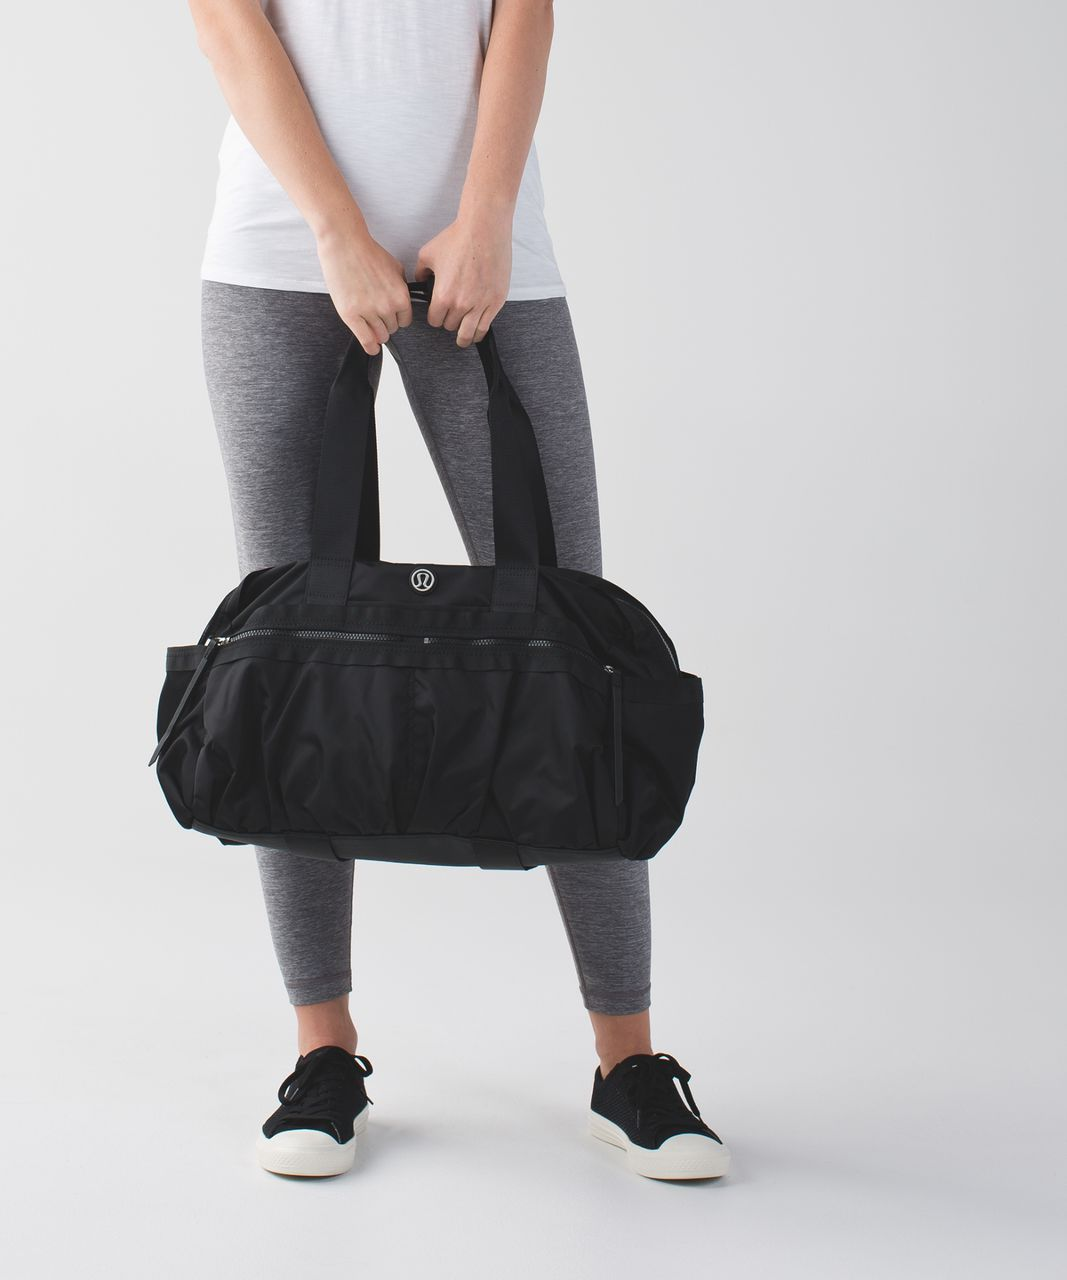 d28968f7cf3 Lululemon Gym To Win Duffel - Black - lulu fanatics